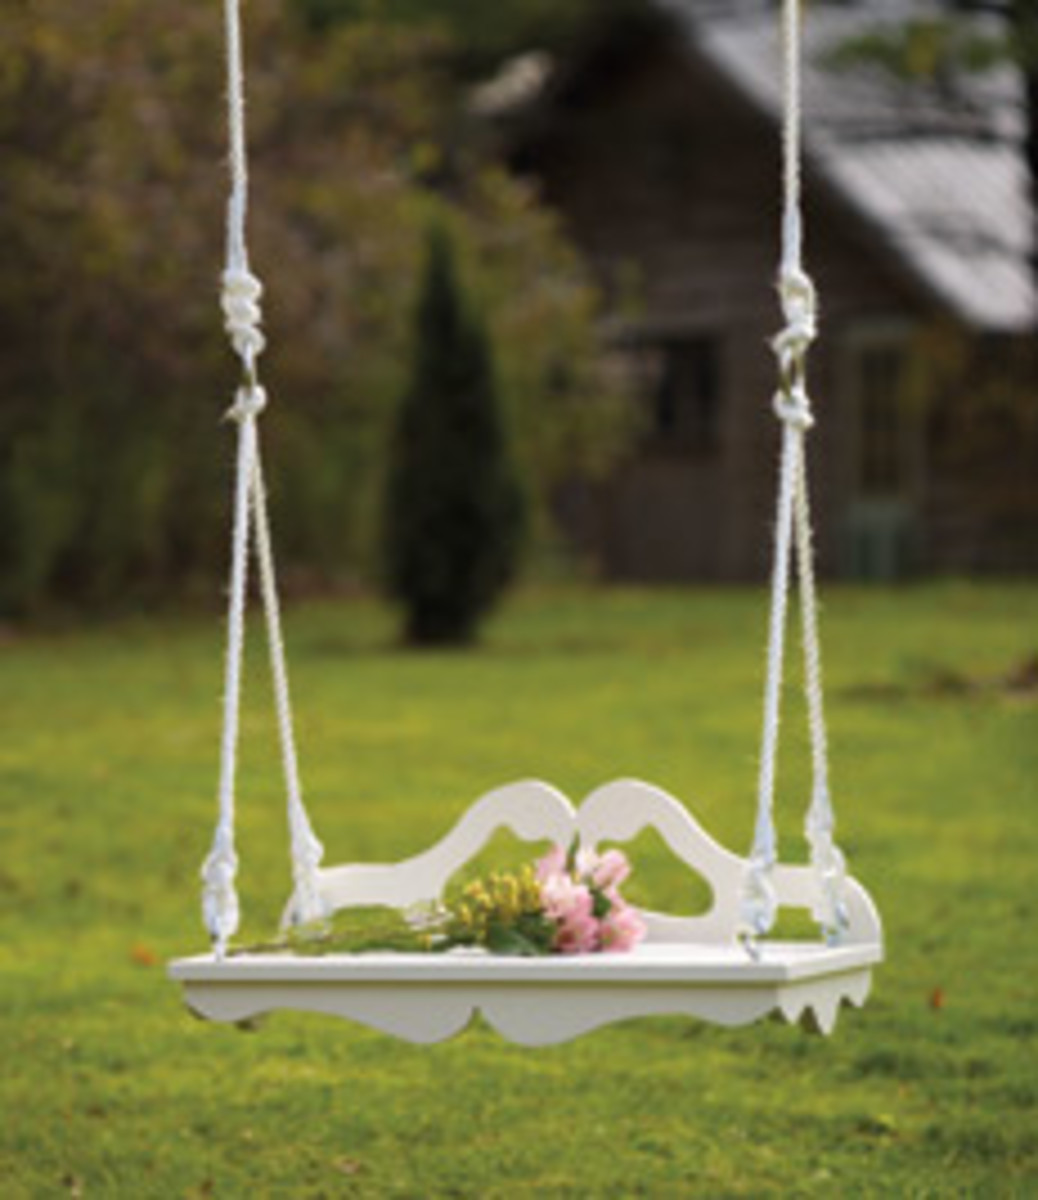 Home Design Ideas Victorian Swings Perfect For The Porch